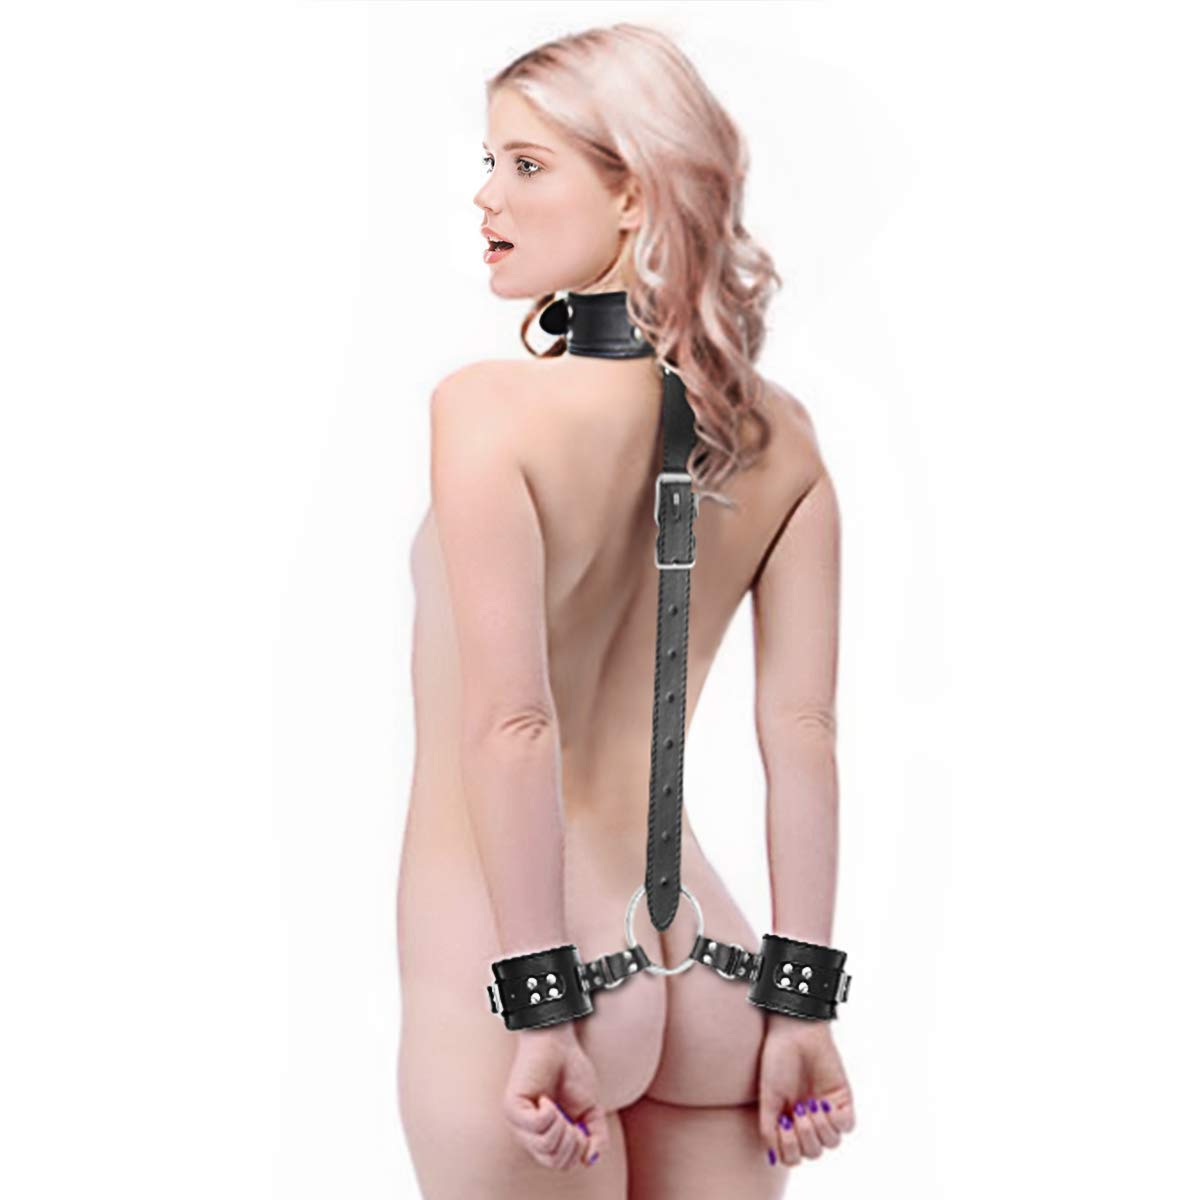 Neck to Wrist Restraints kit, Sexy Slave Frisky Beginner Behind Back Handcuffs Collar, Adjustable Bondage Set, Couple SM Sex Game Tool(Black) by SEXY SLAVE